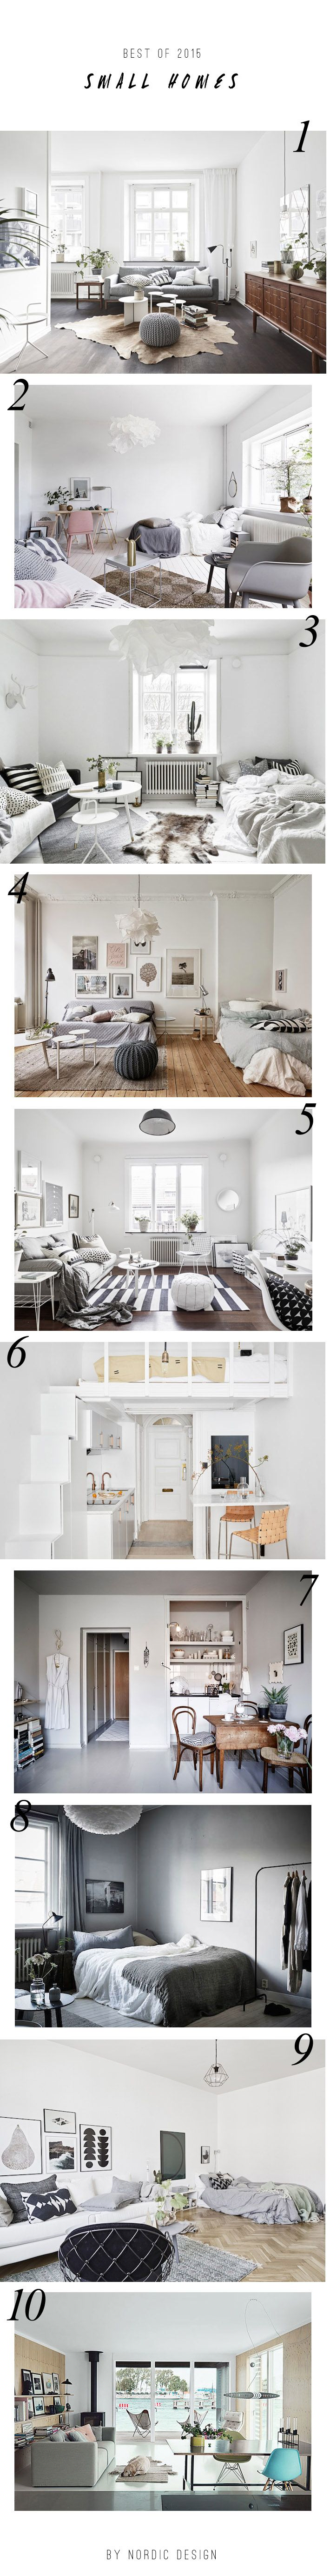 7 ways to make small spaces feel way bigger golden rule small